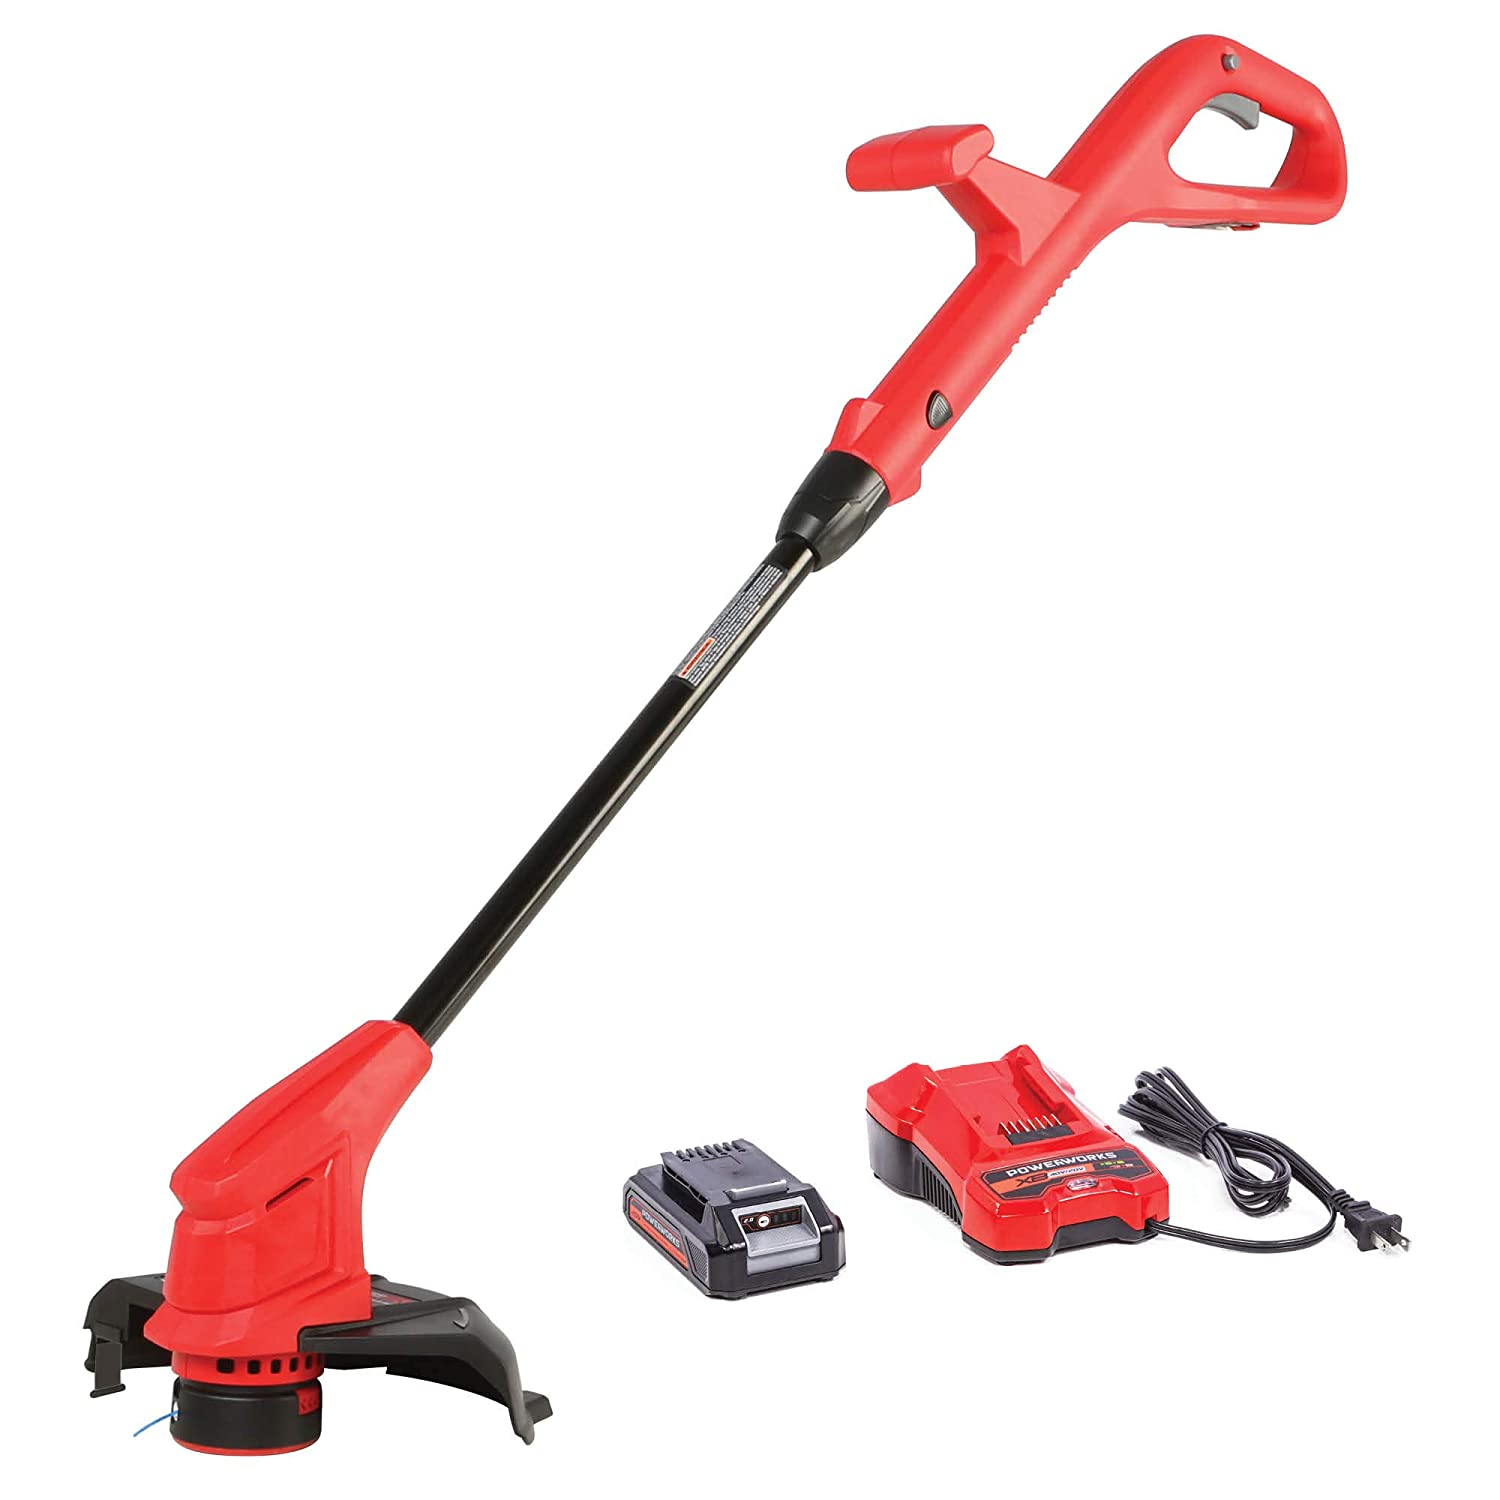 Powerworks XB 20V 10-Inch Cordless String Trimmer, 2Ah Battery and Charger Included STP301, 10 inch, Red Black